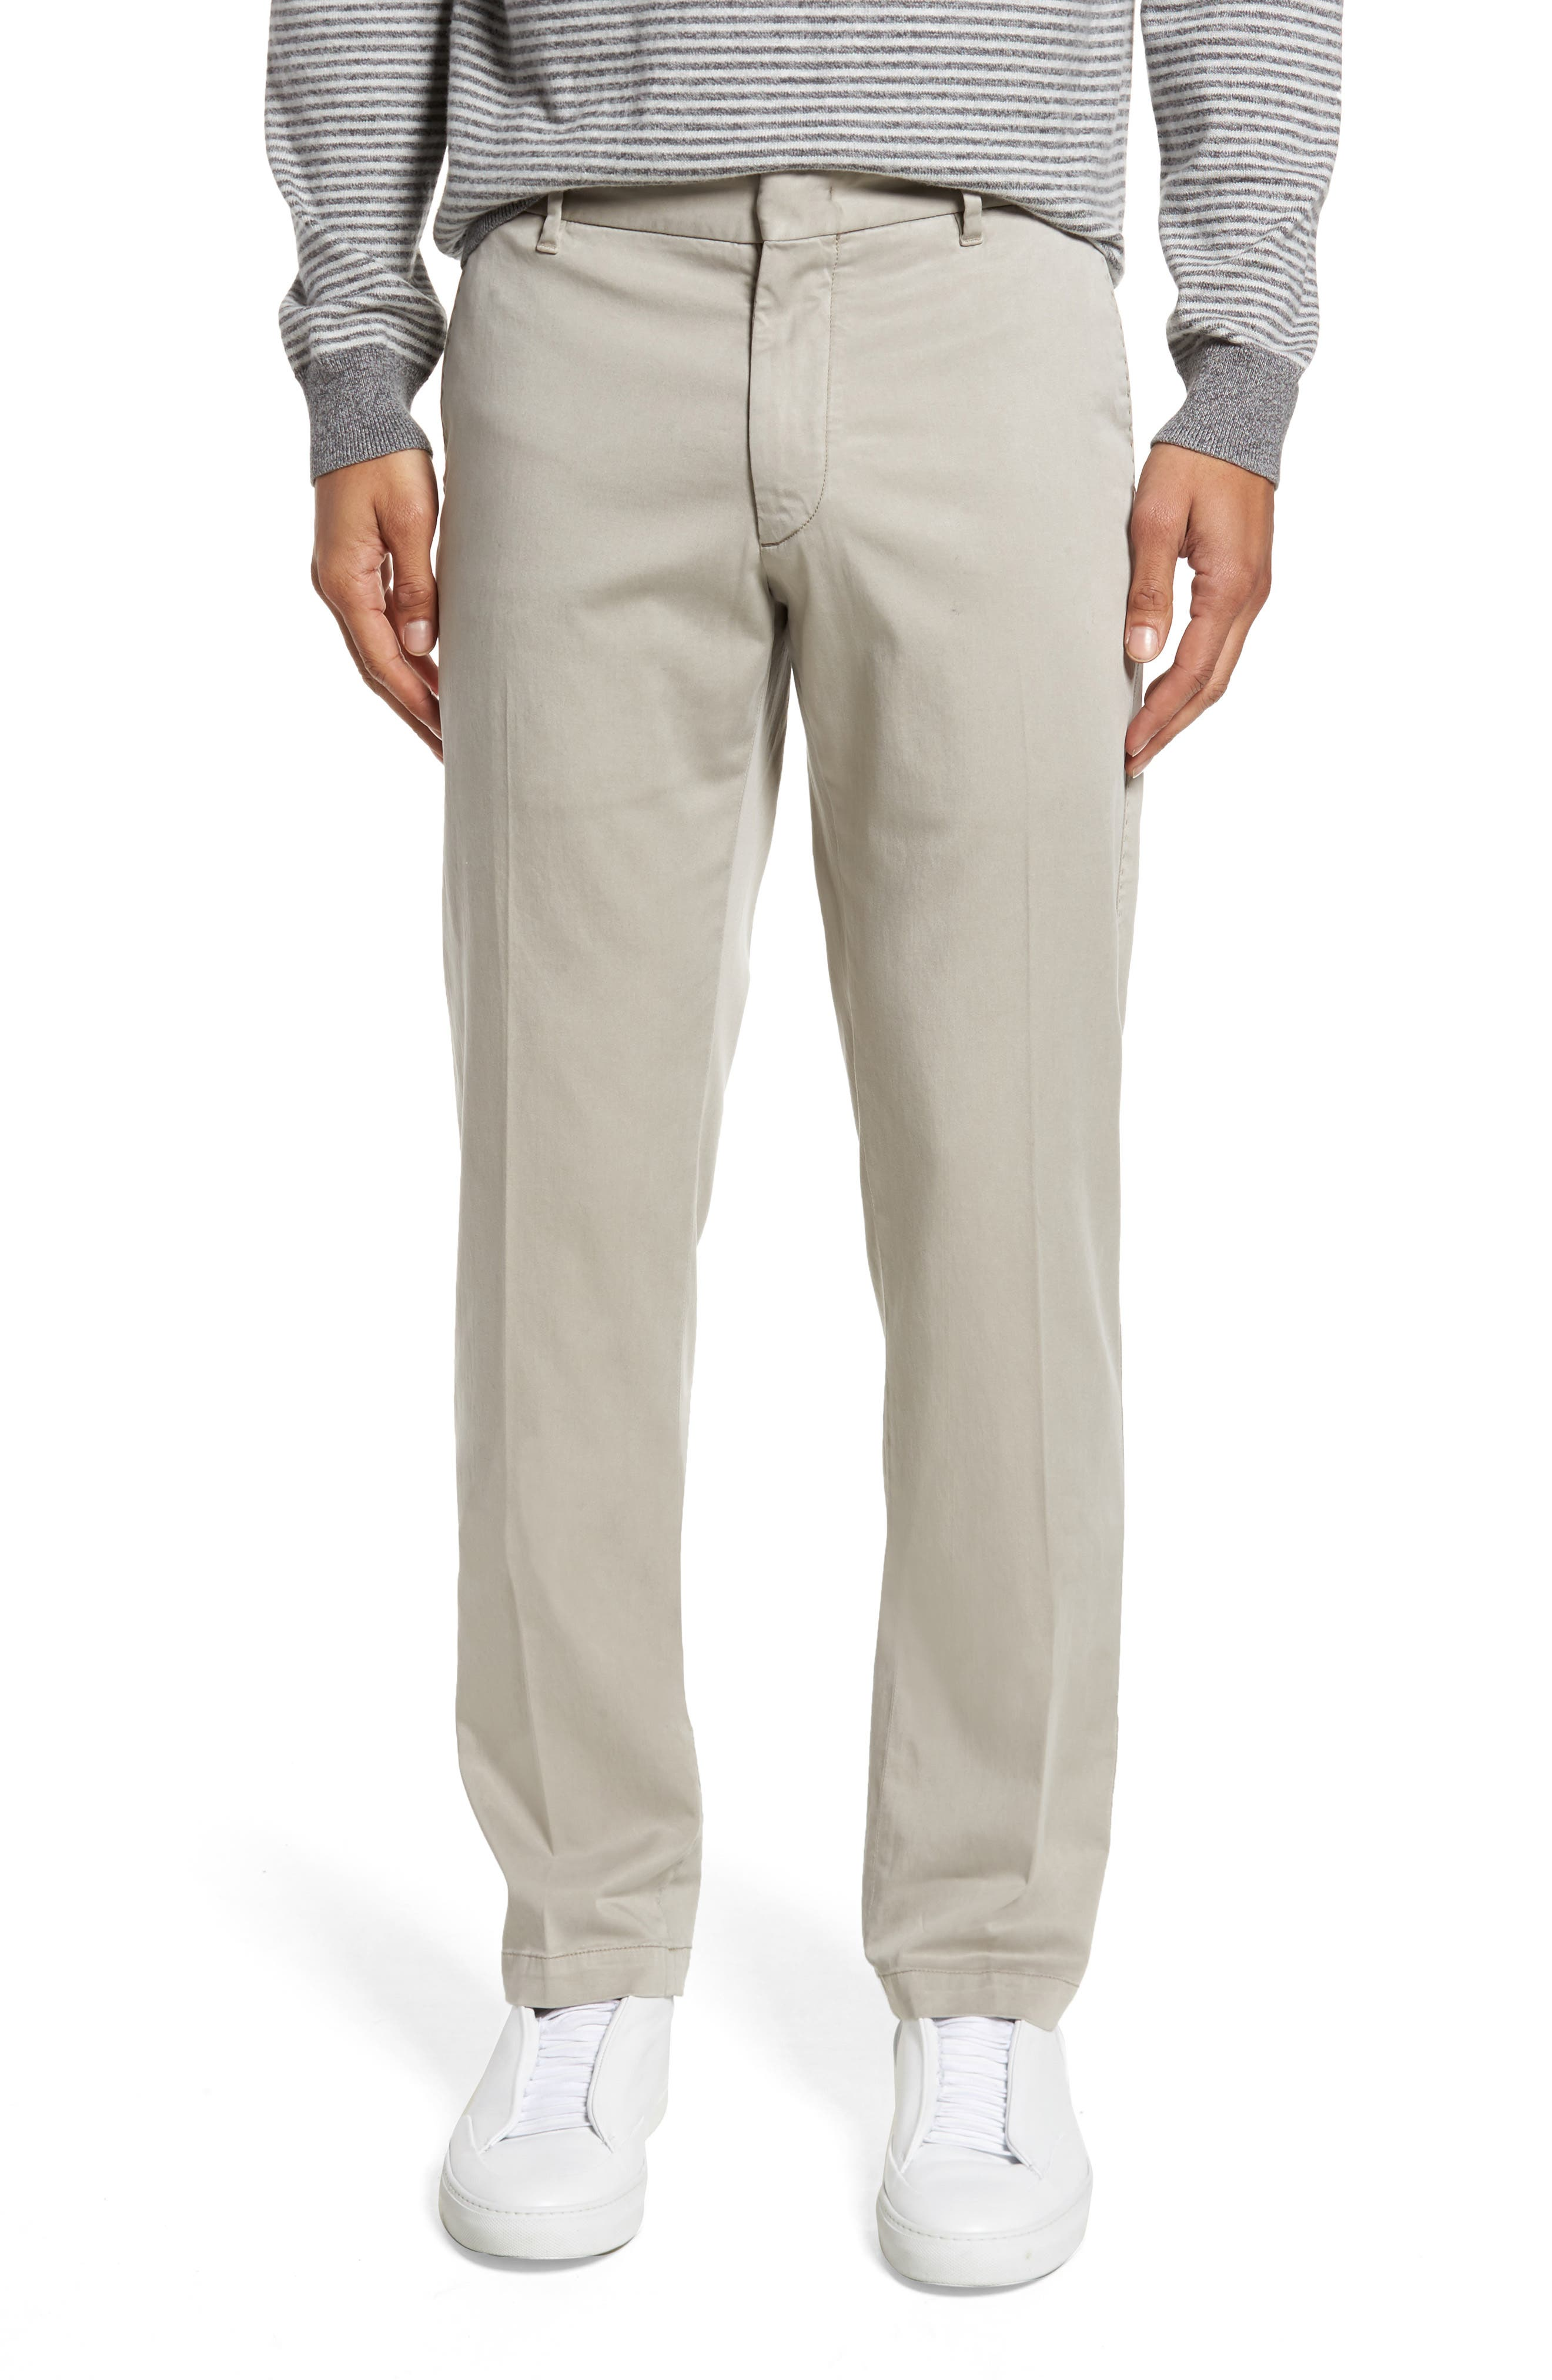 ZACHARY PRELL Aster Straight Fit Pants in Dark Stone